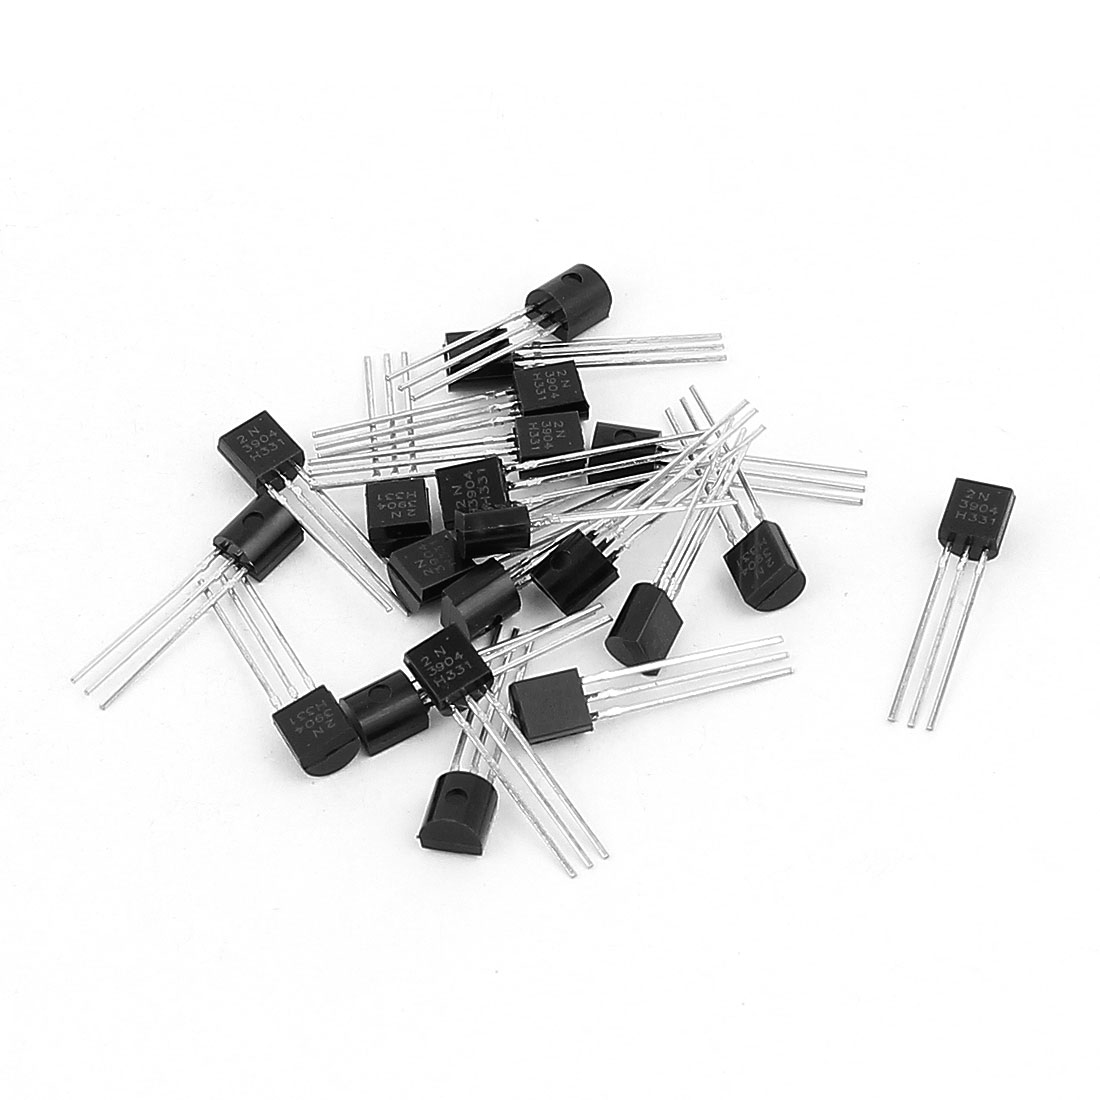 20 Pcs 2N3904 TO-92 NPN Bipolar Low Power Junction Transistors 40V 0.2A